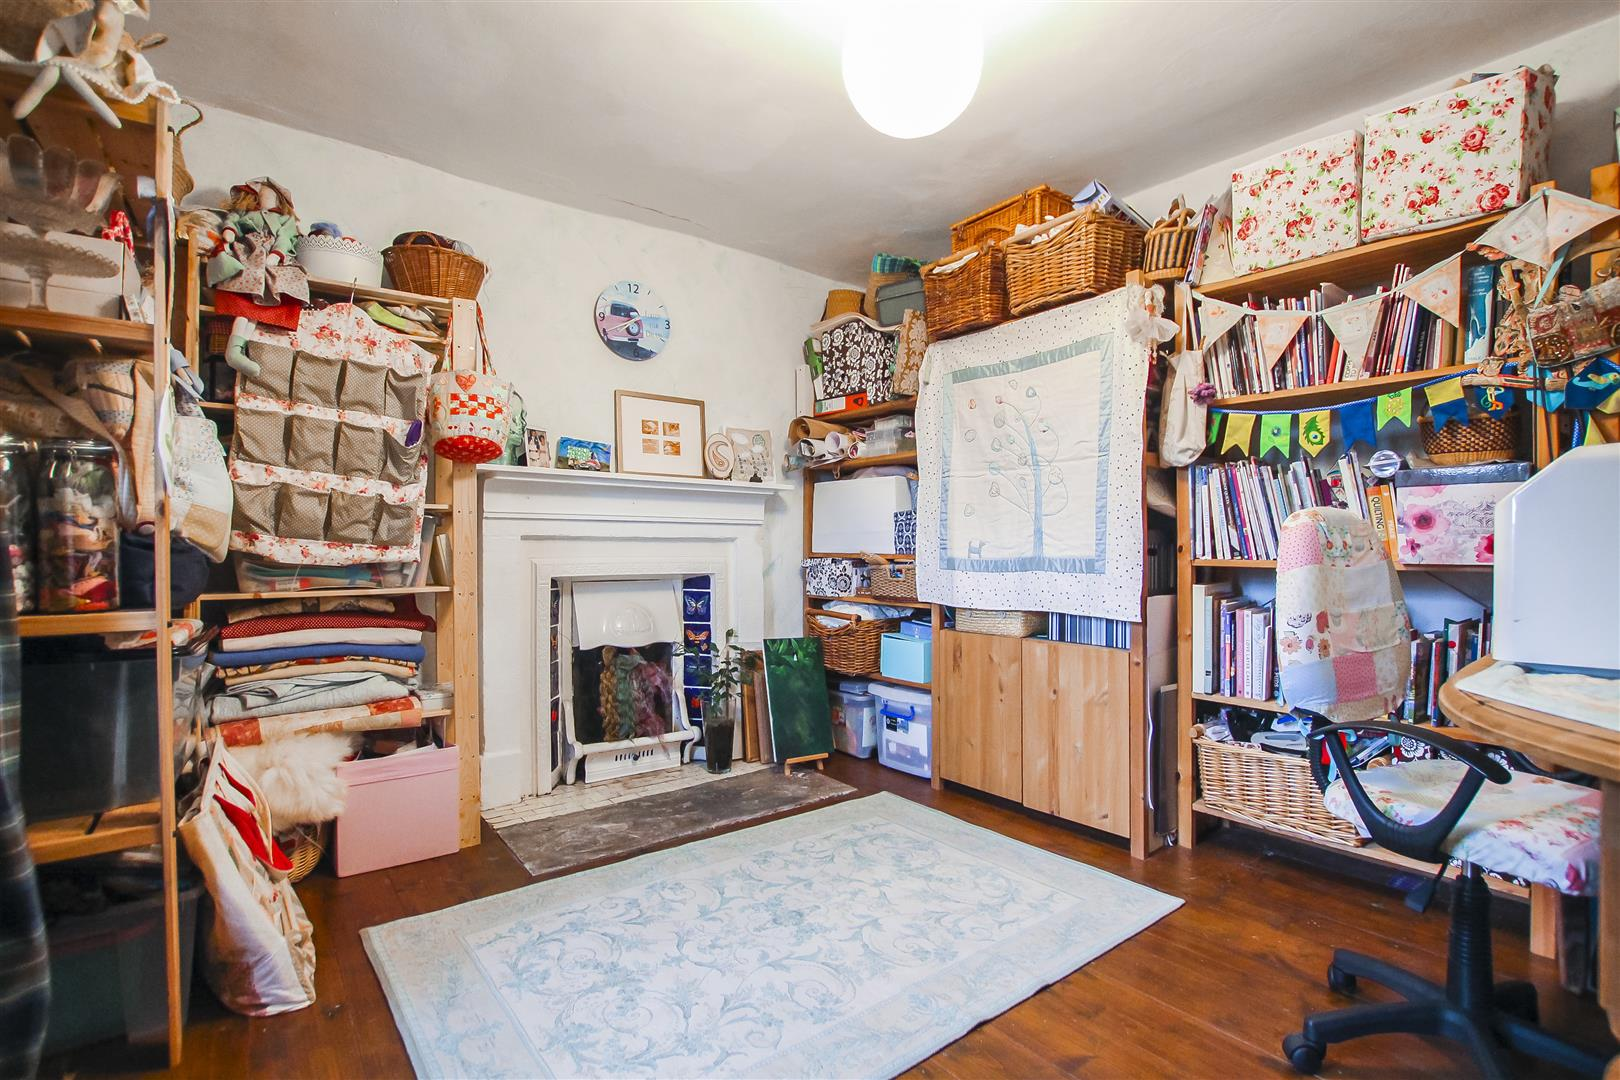 4 Bedroom House For Sale - Study